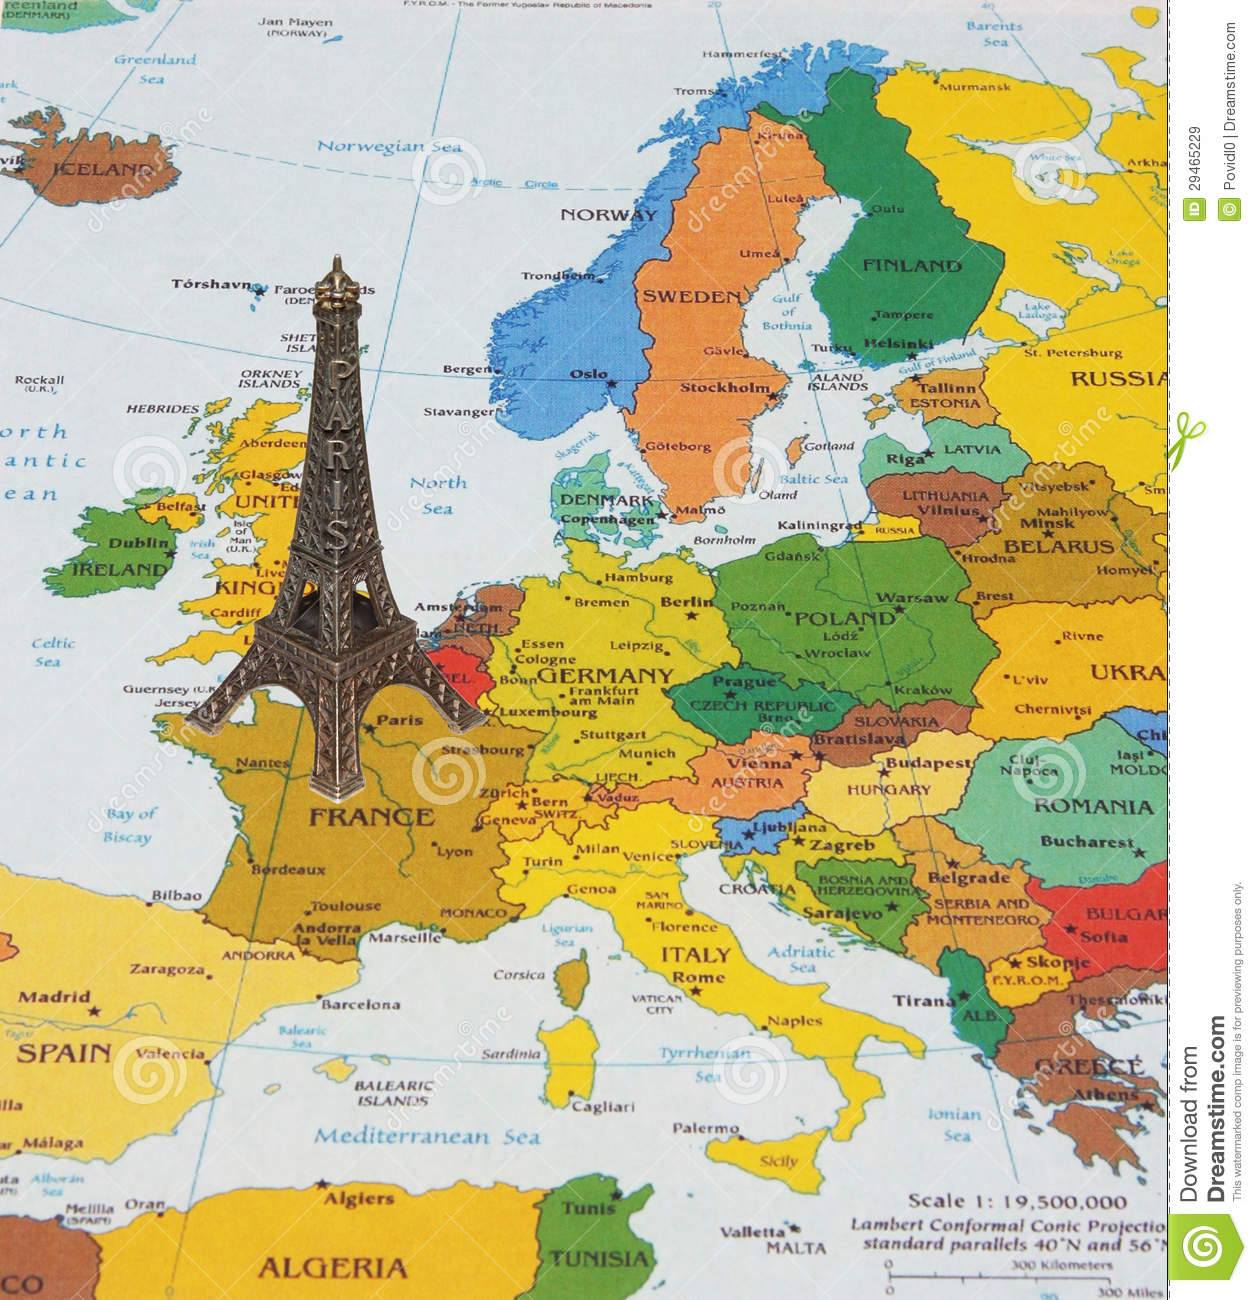 Map Of France Eiffel Tower.Eiffel Tower On The Map Stock Image Image Of Books Travel 29465229